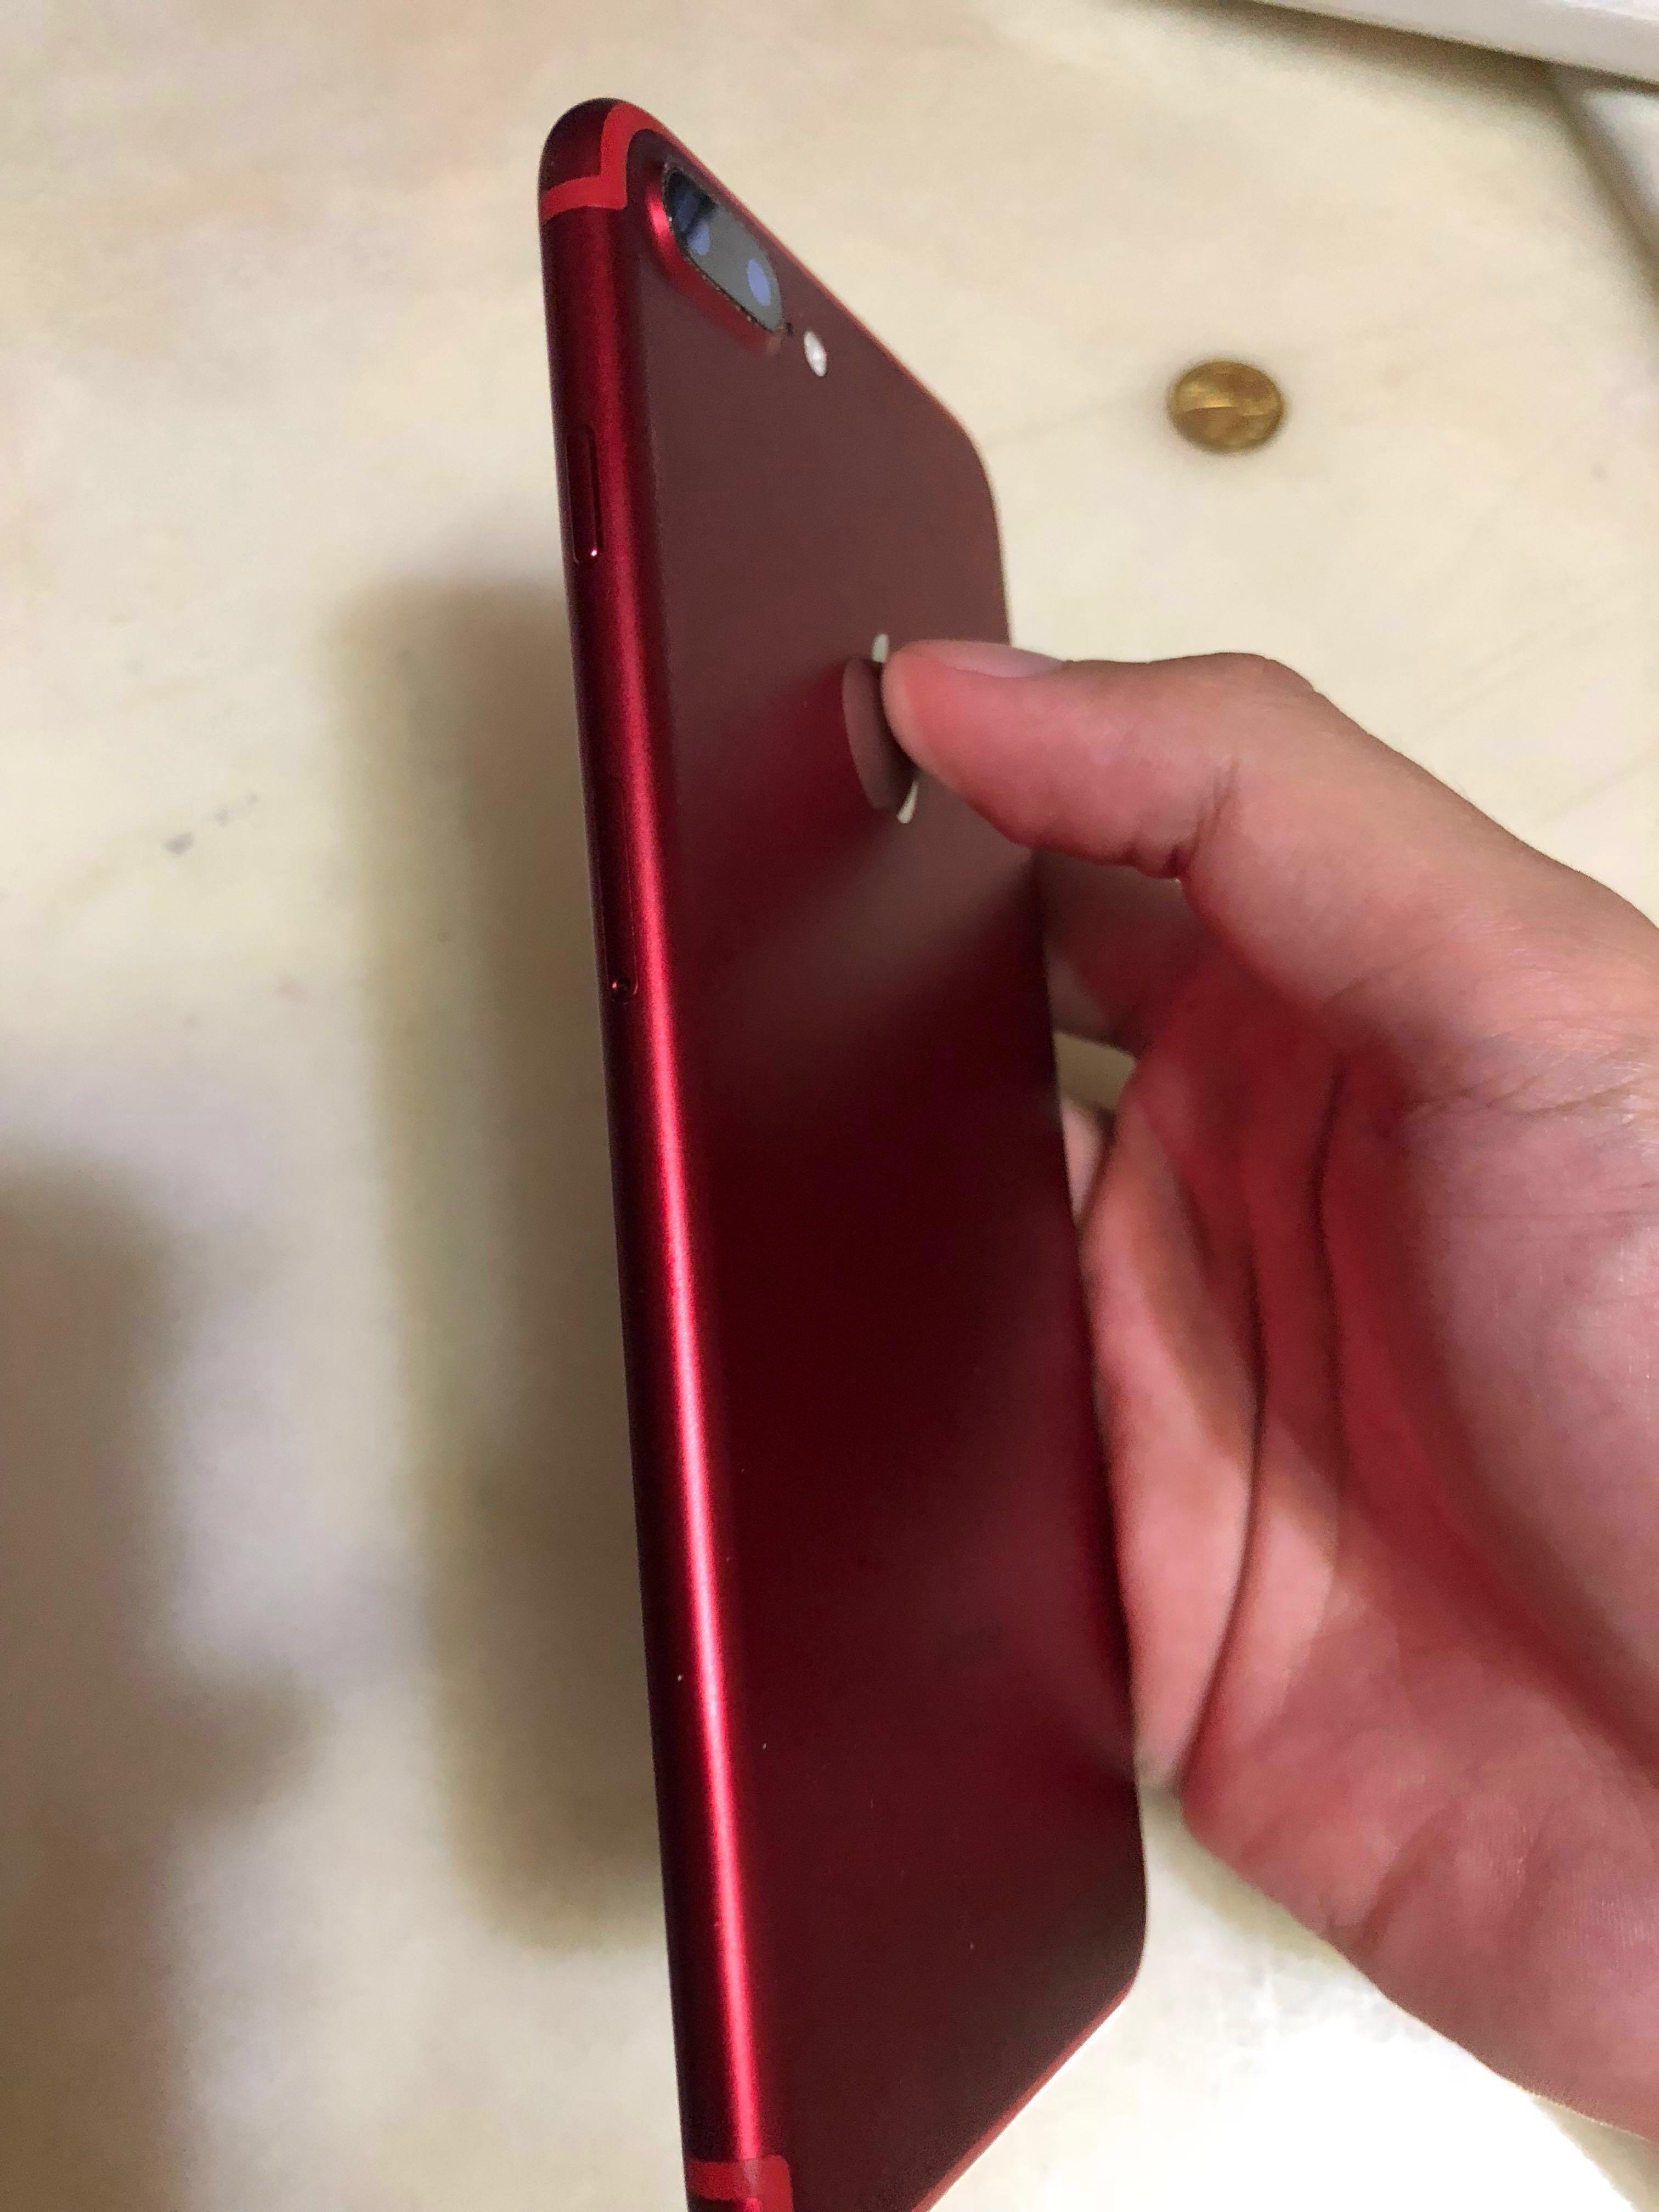 RED IPHONE 7 PLUS 128GB (RED), Mobile Phones & Tablets